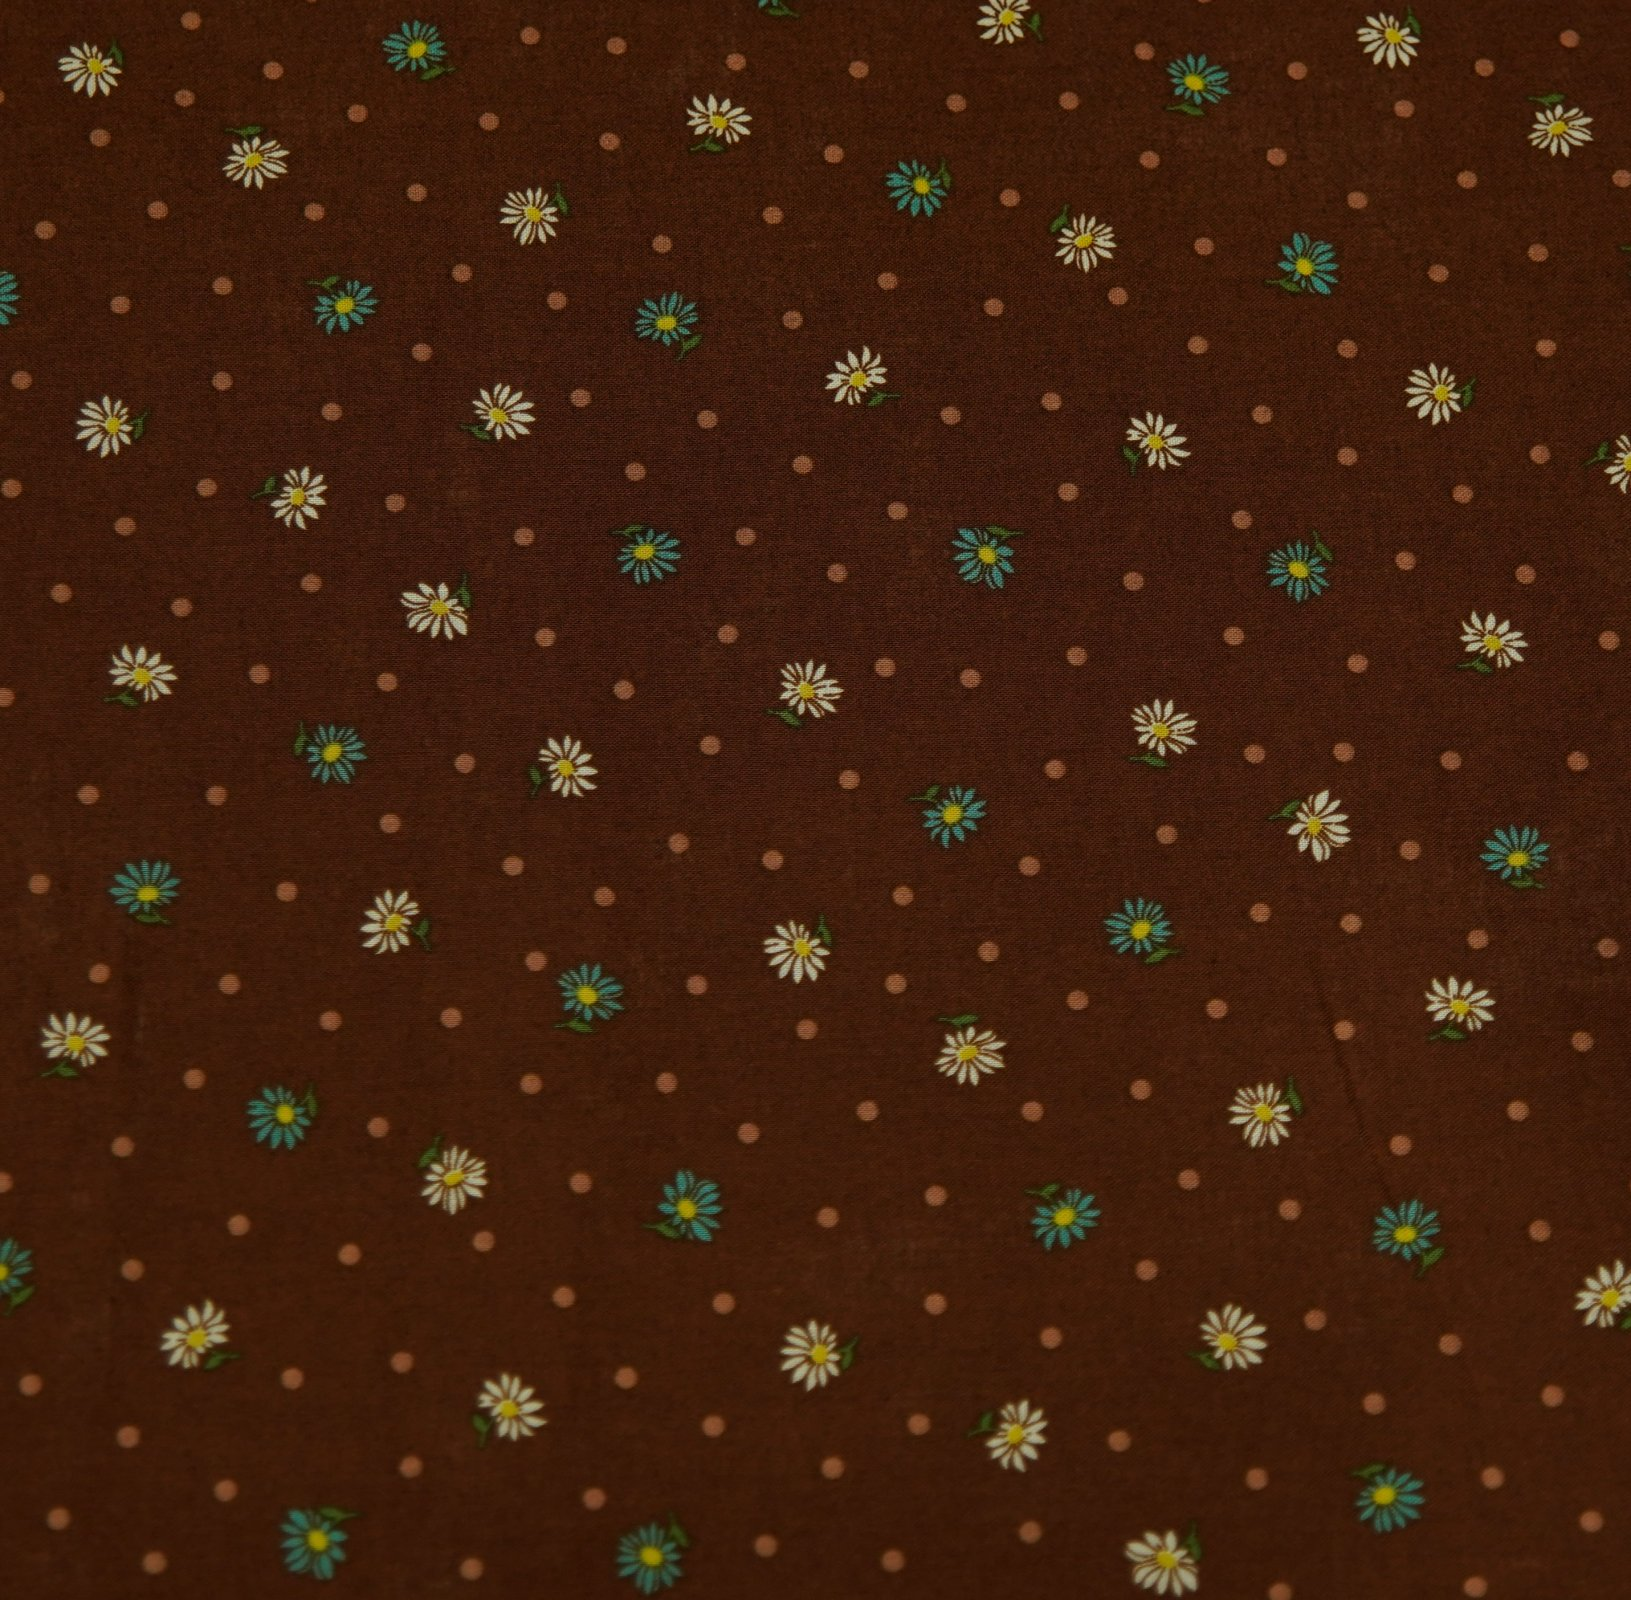 Japanese Fabric - Floral & Spot - Brown